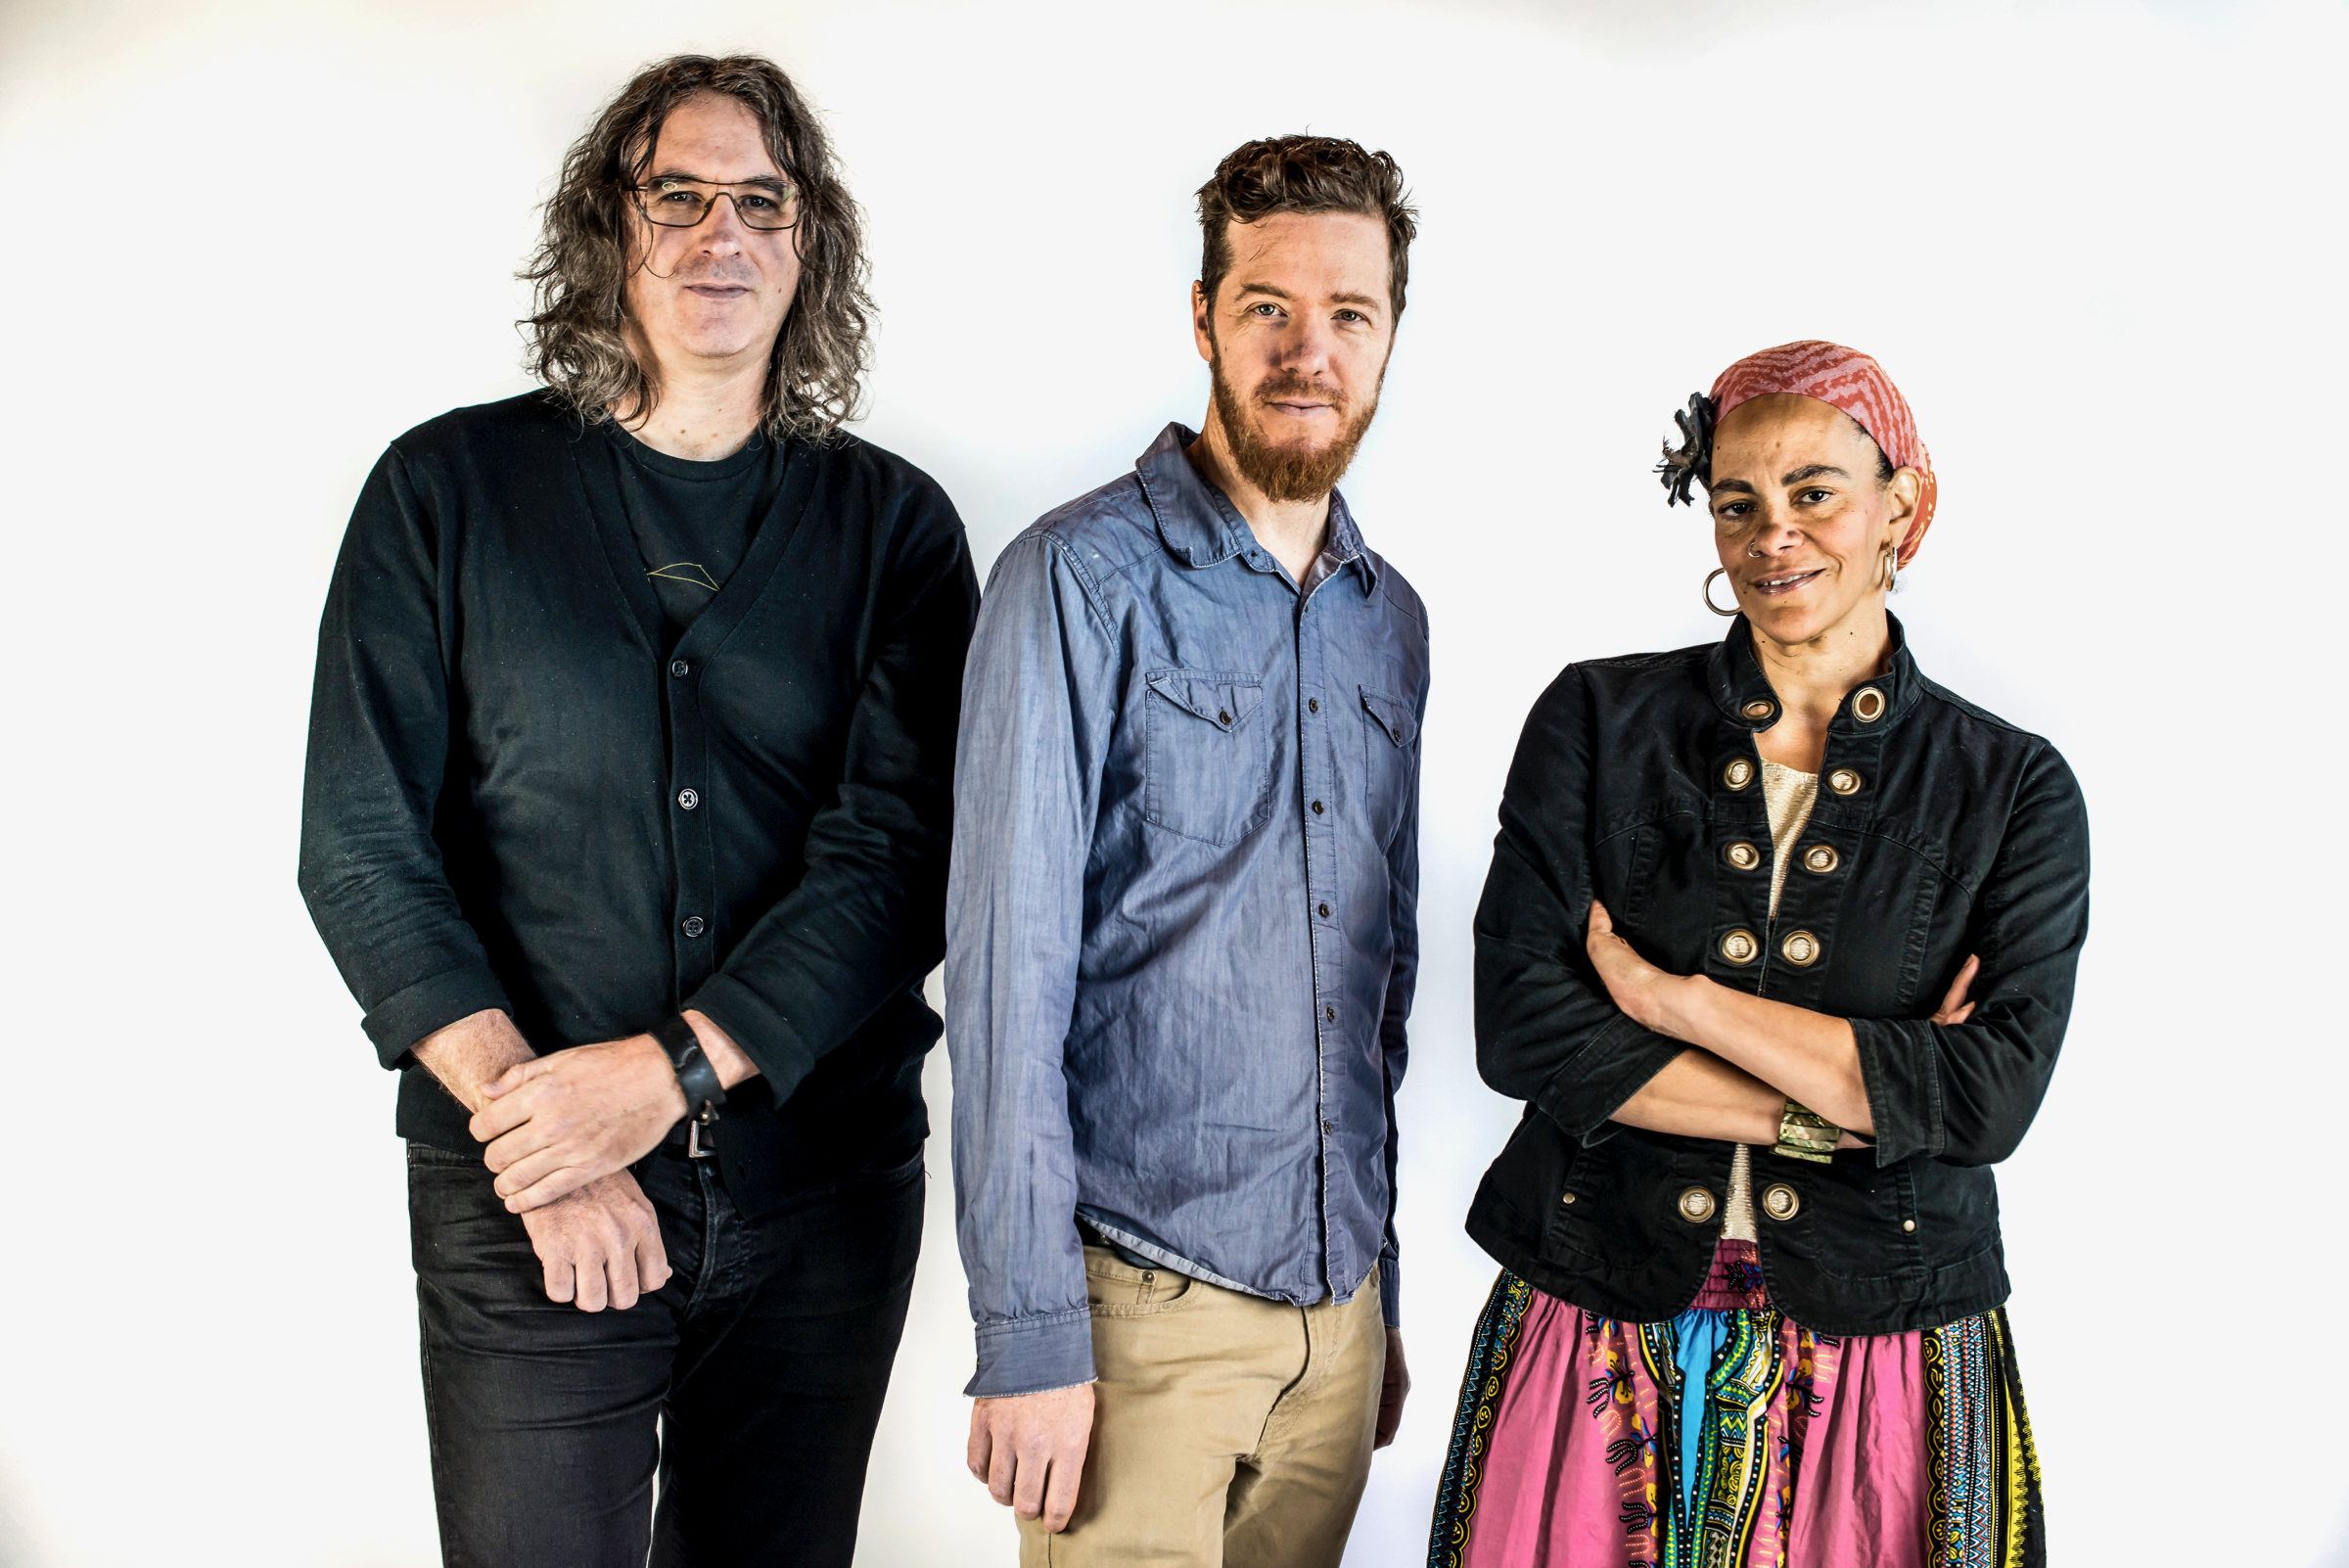 Kimmel Center artist-in-residence Doug Hirlinger (center) is pictured with two of his four collaborators, composer/guitarist Tim Motzer and lyricist/poet Ursula Rucker.